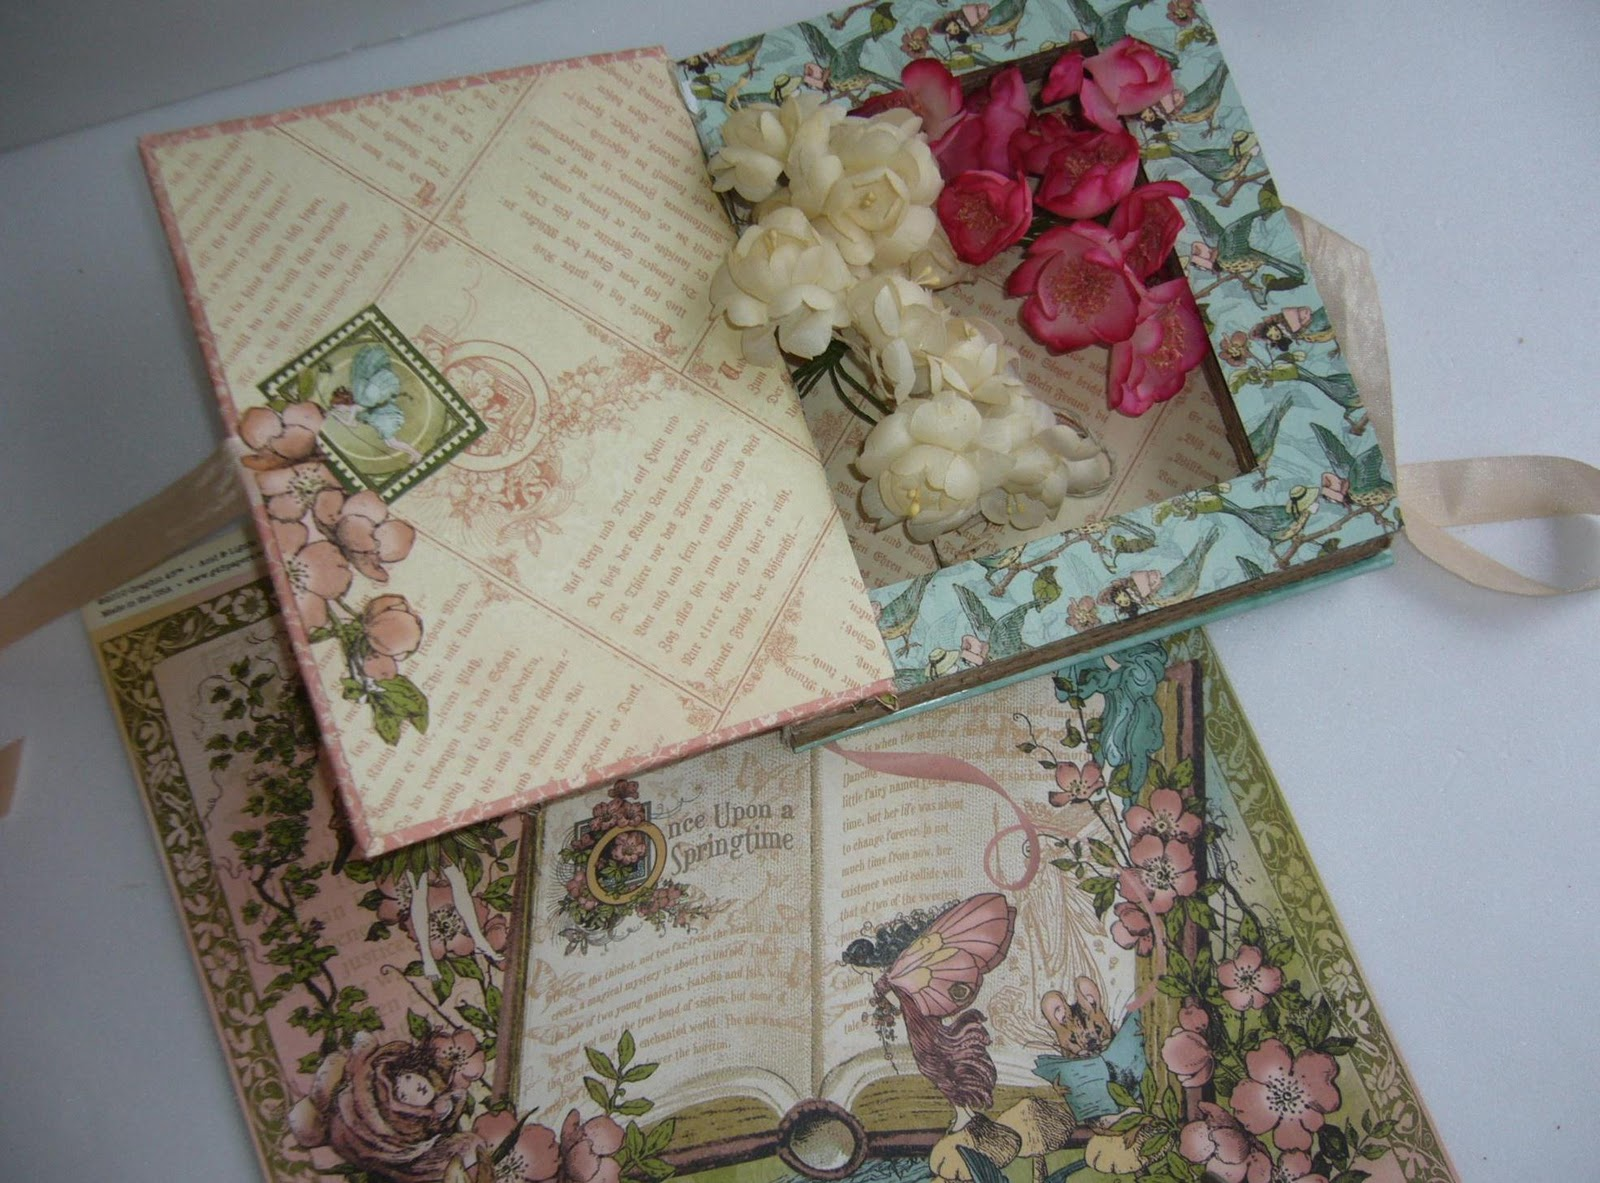 papeis de scrapbooking Graphic 45 Once Upon a Springtime Collection: #673C3B 1600x1183